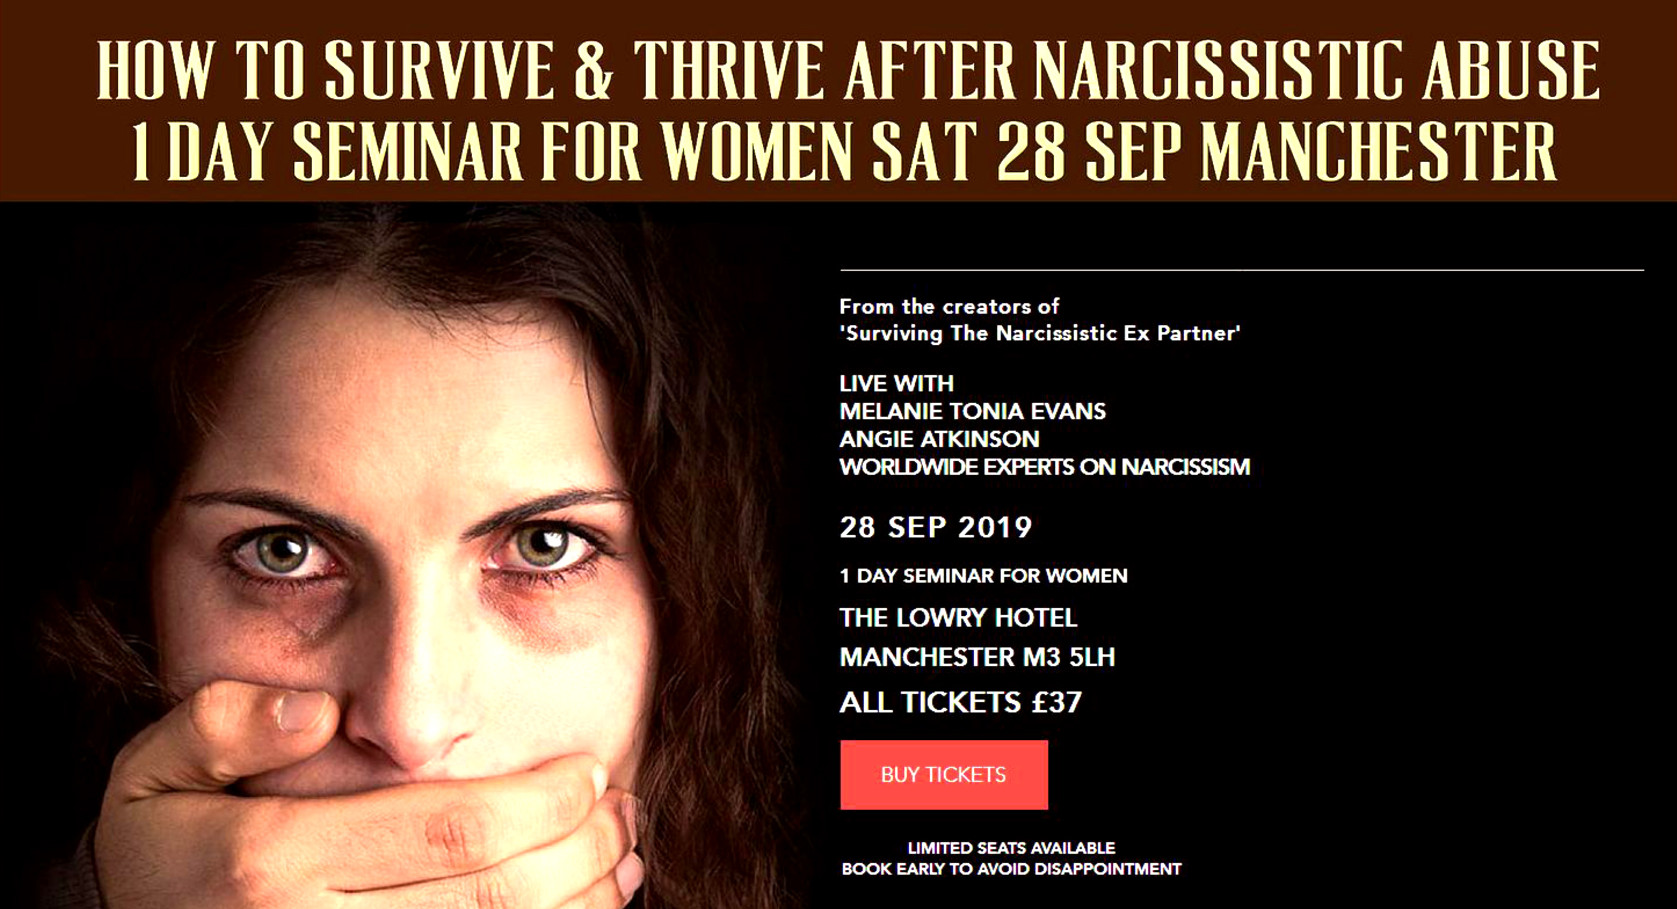 Overcoming Narcissism | Buy Tickets